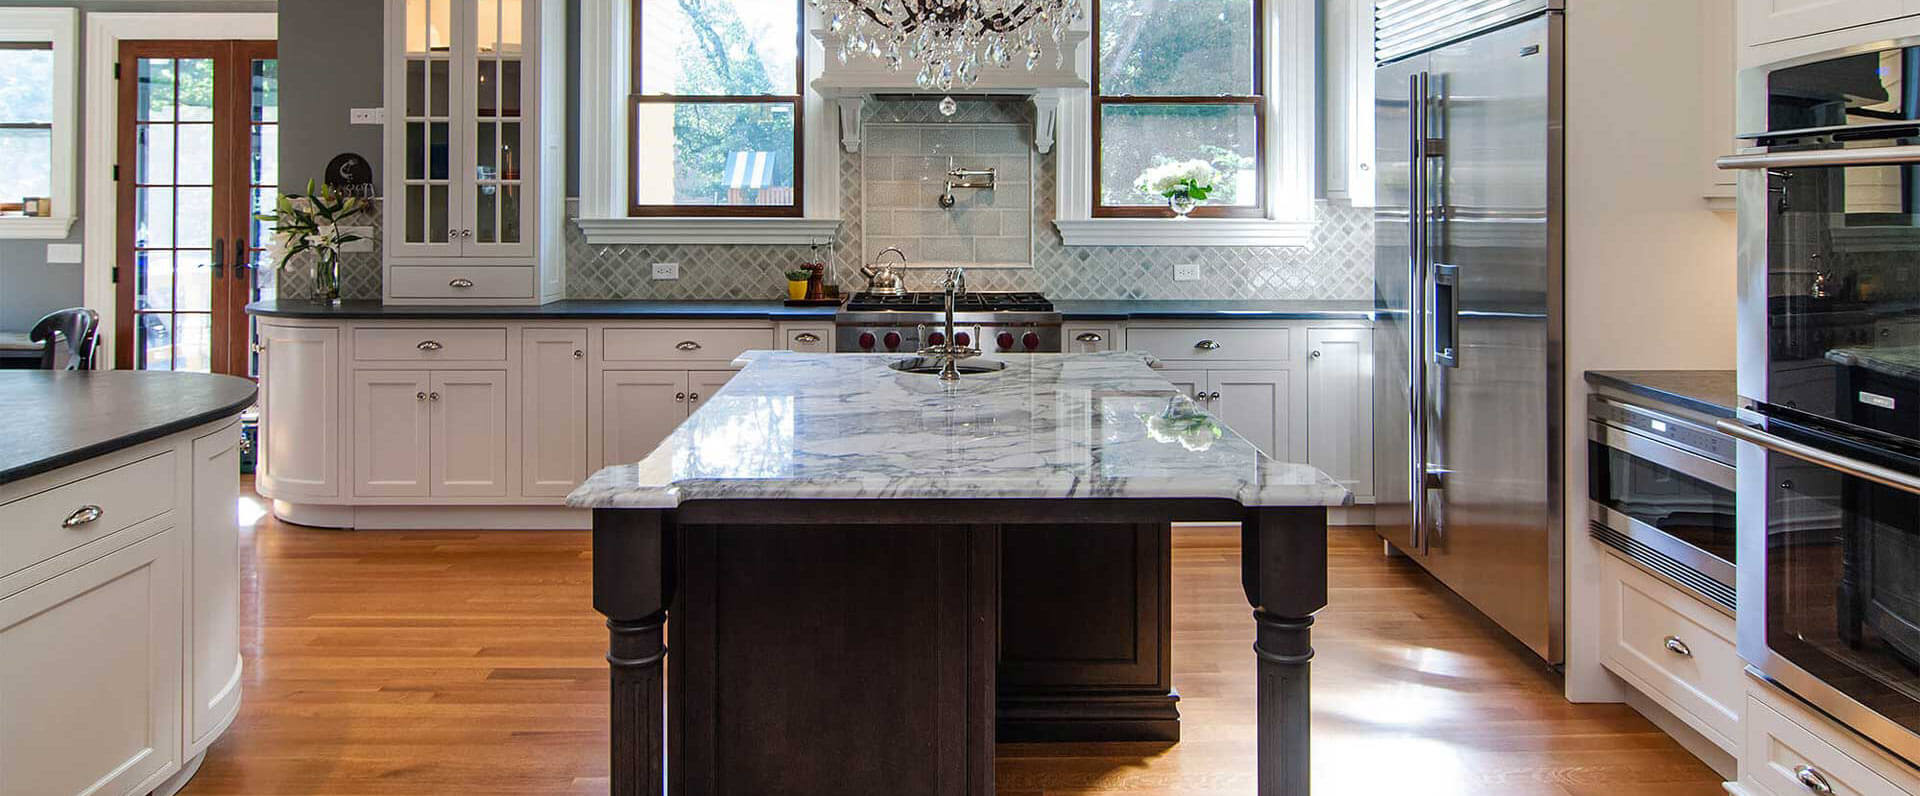 Kitchen Design Amp Remodeling In Ct The Kitchen Company